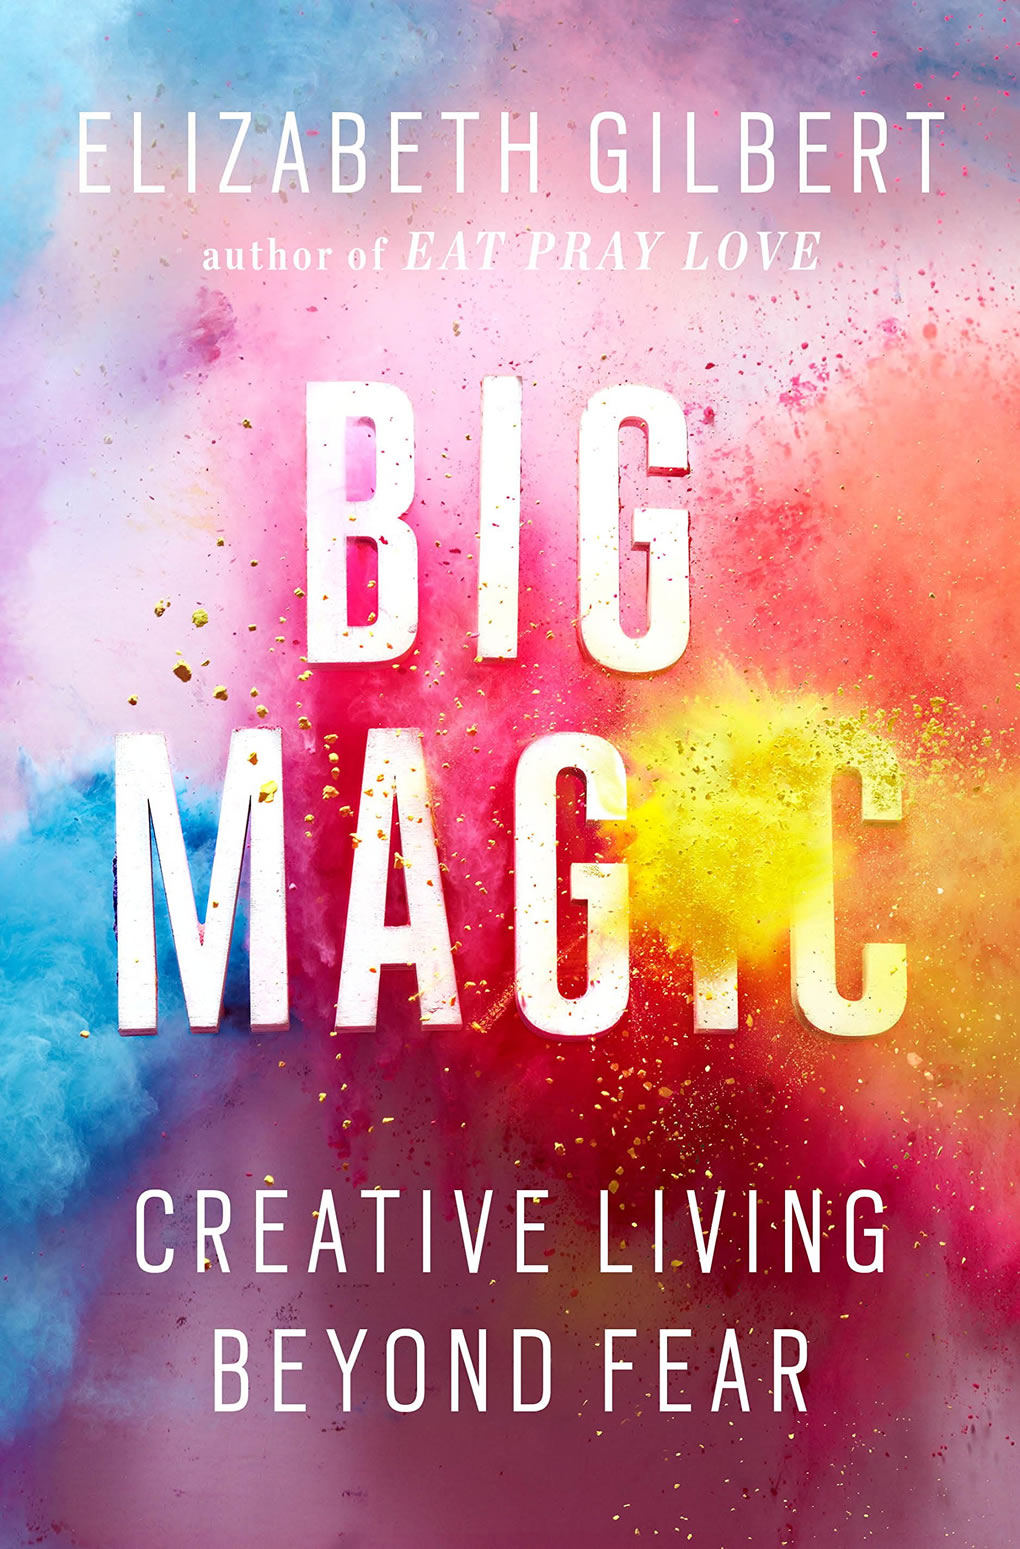 Book Review: Elizabeth Gilbert's Big Magic